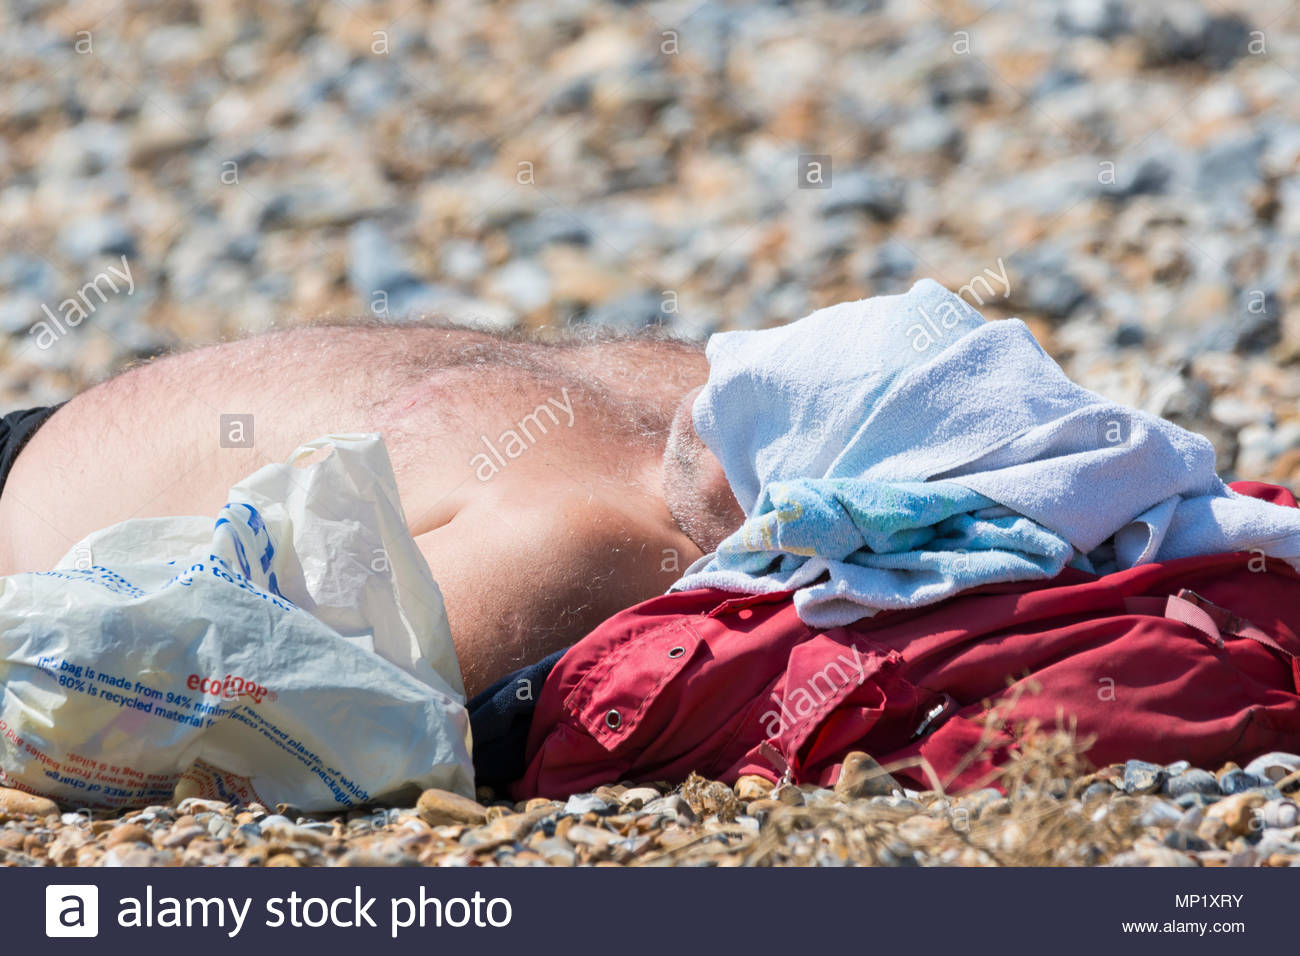 Littlehampton, West Sussex, England, UK. Sunday 20th May 2018. A man lays on the beach on a warm and sunny afternoon in Littlehampton on the South Coast. Credit: Geoff Smith / Alamy Live News Stock Photo